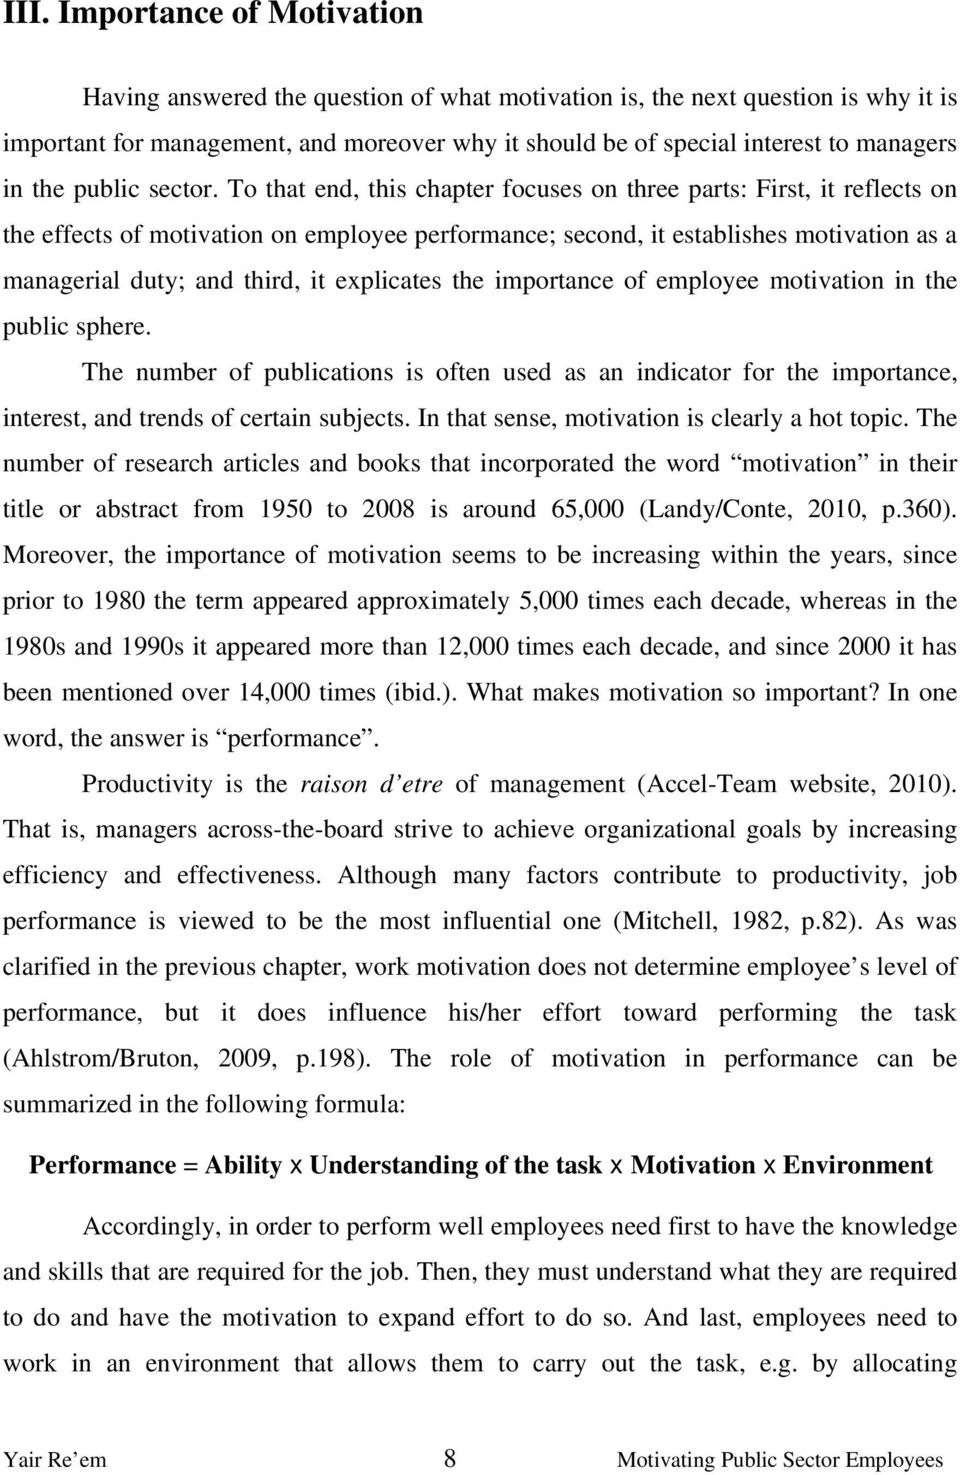 To that end, this chapter focuses on three parts: First, it reflects on the effects of motivation on employee performance; second, it establishes motivation as a managerial duty; and third, it